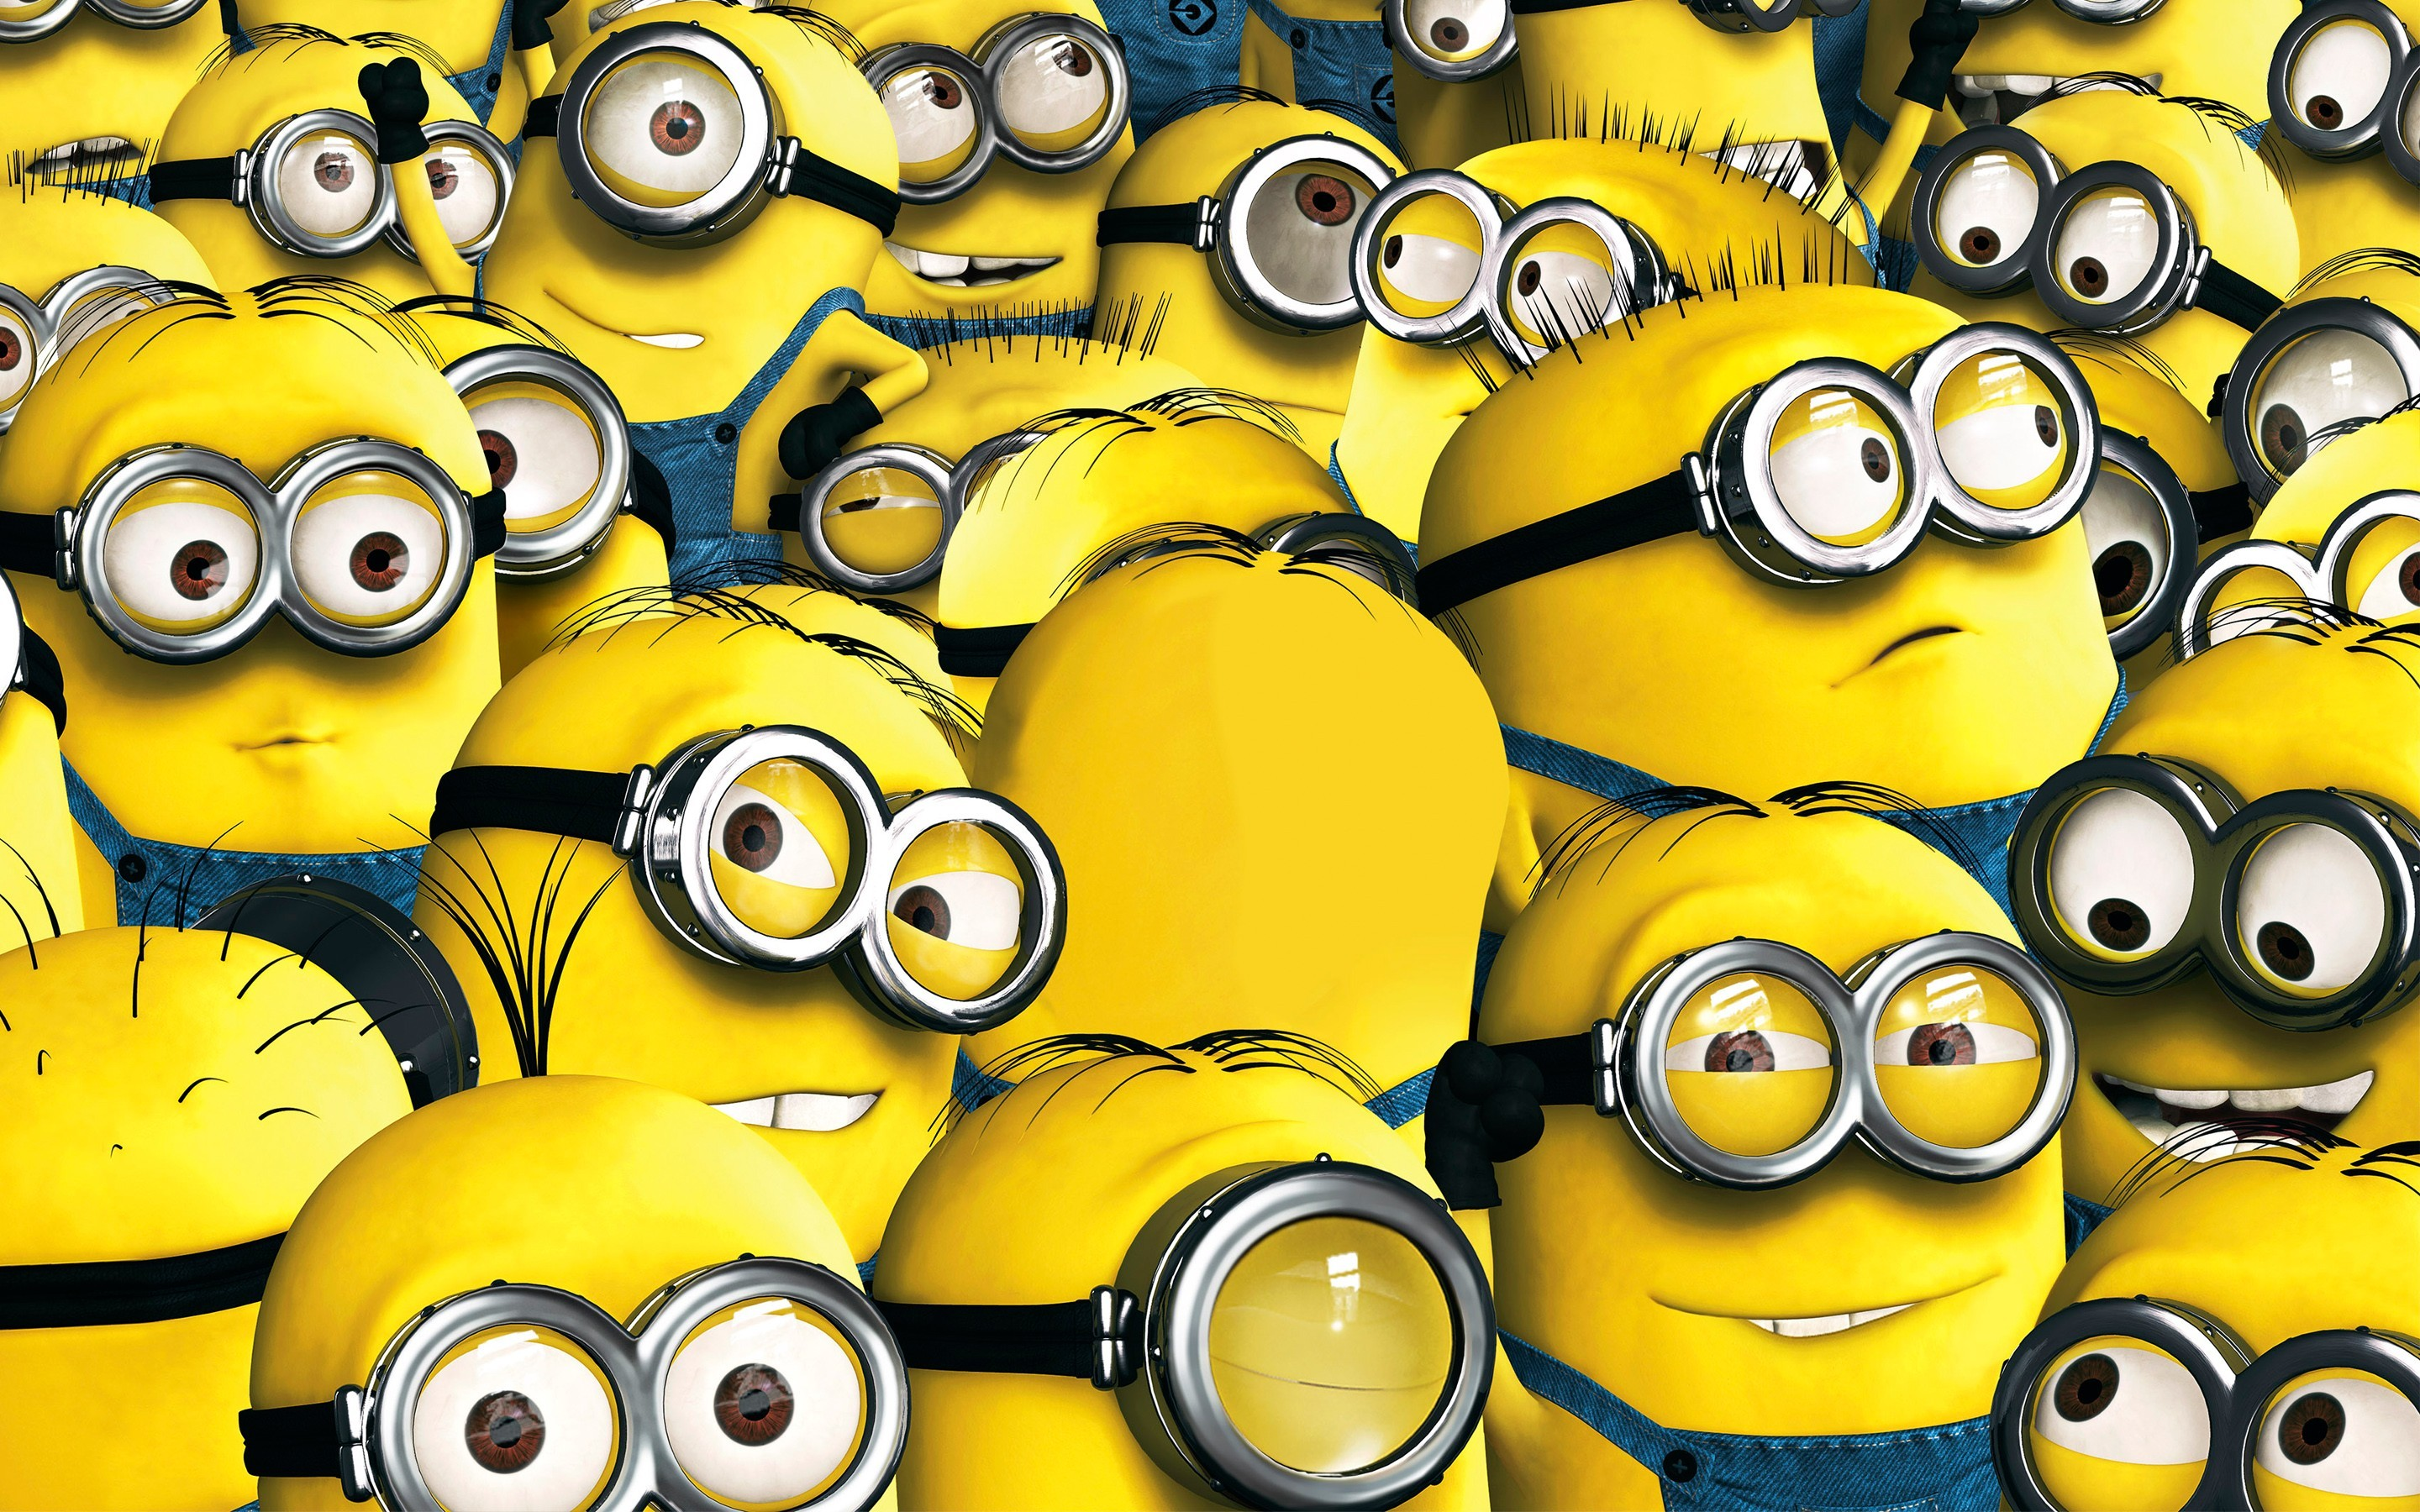 Minion Iphone Wallpaper Hd 83 Images